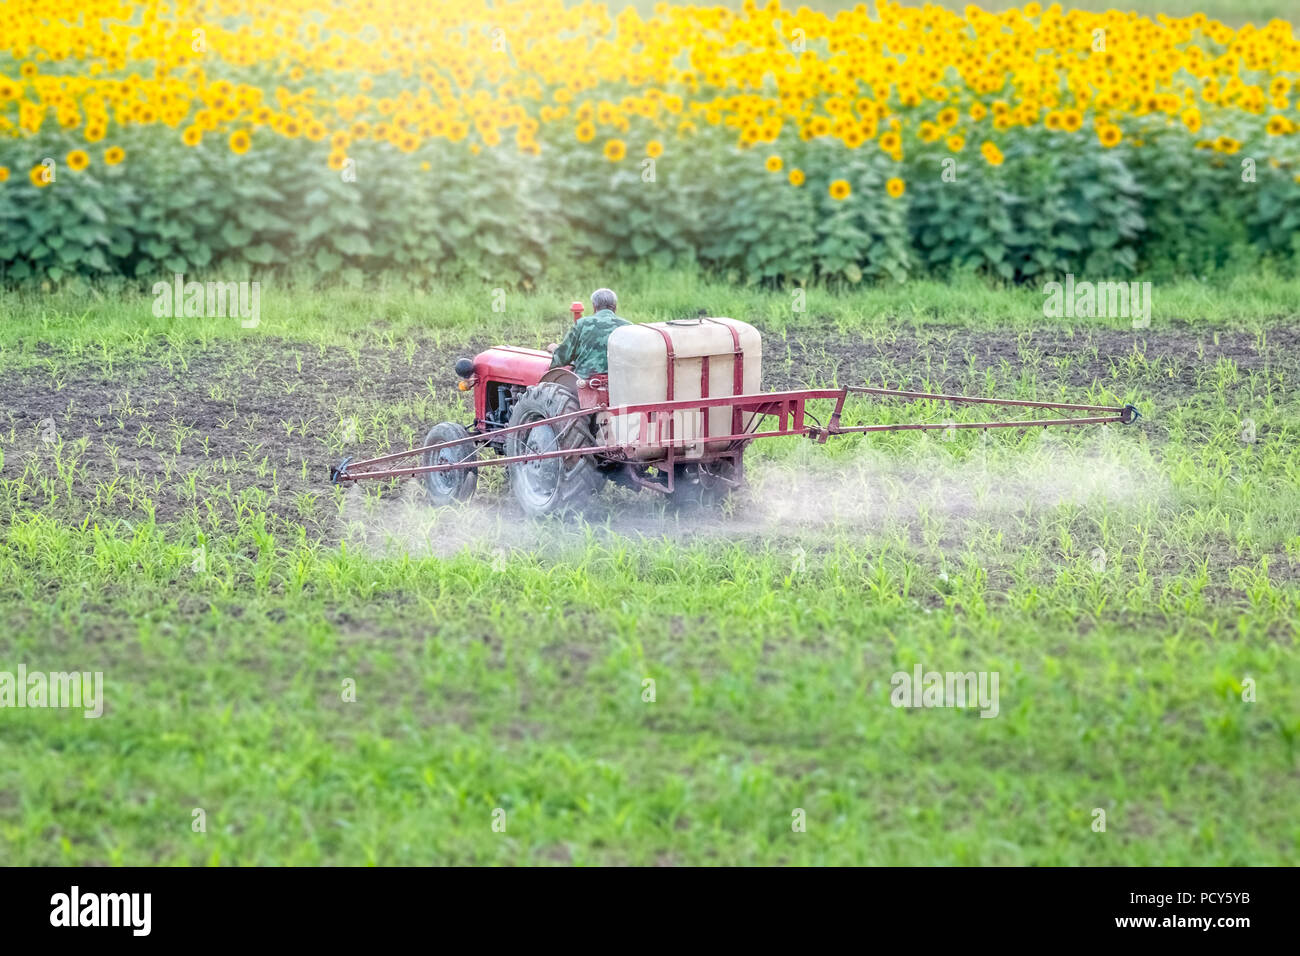 Man Spraying Pesticides Stock Photos Amp Man Spraying